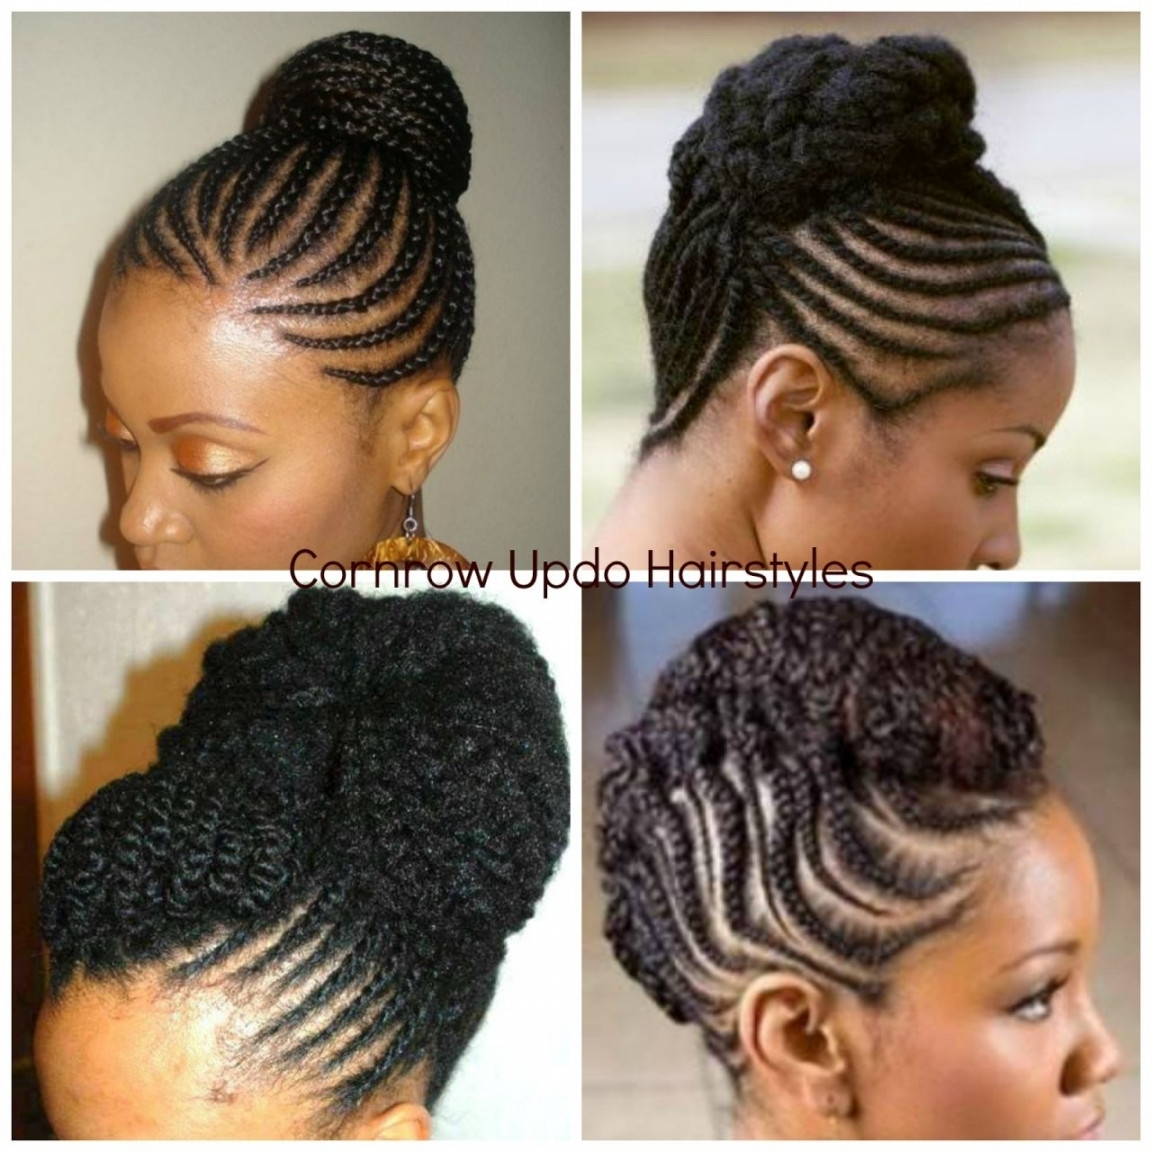 Braiding Styles Natural Hair Cornrow Hairstyles Updo Black Hair Intended For Elegant Cornrow Updo Hairstyles (View 9 of 15)